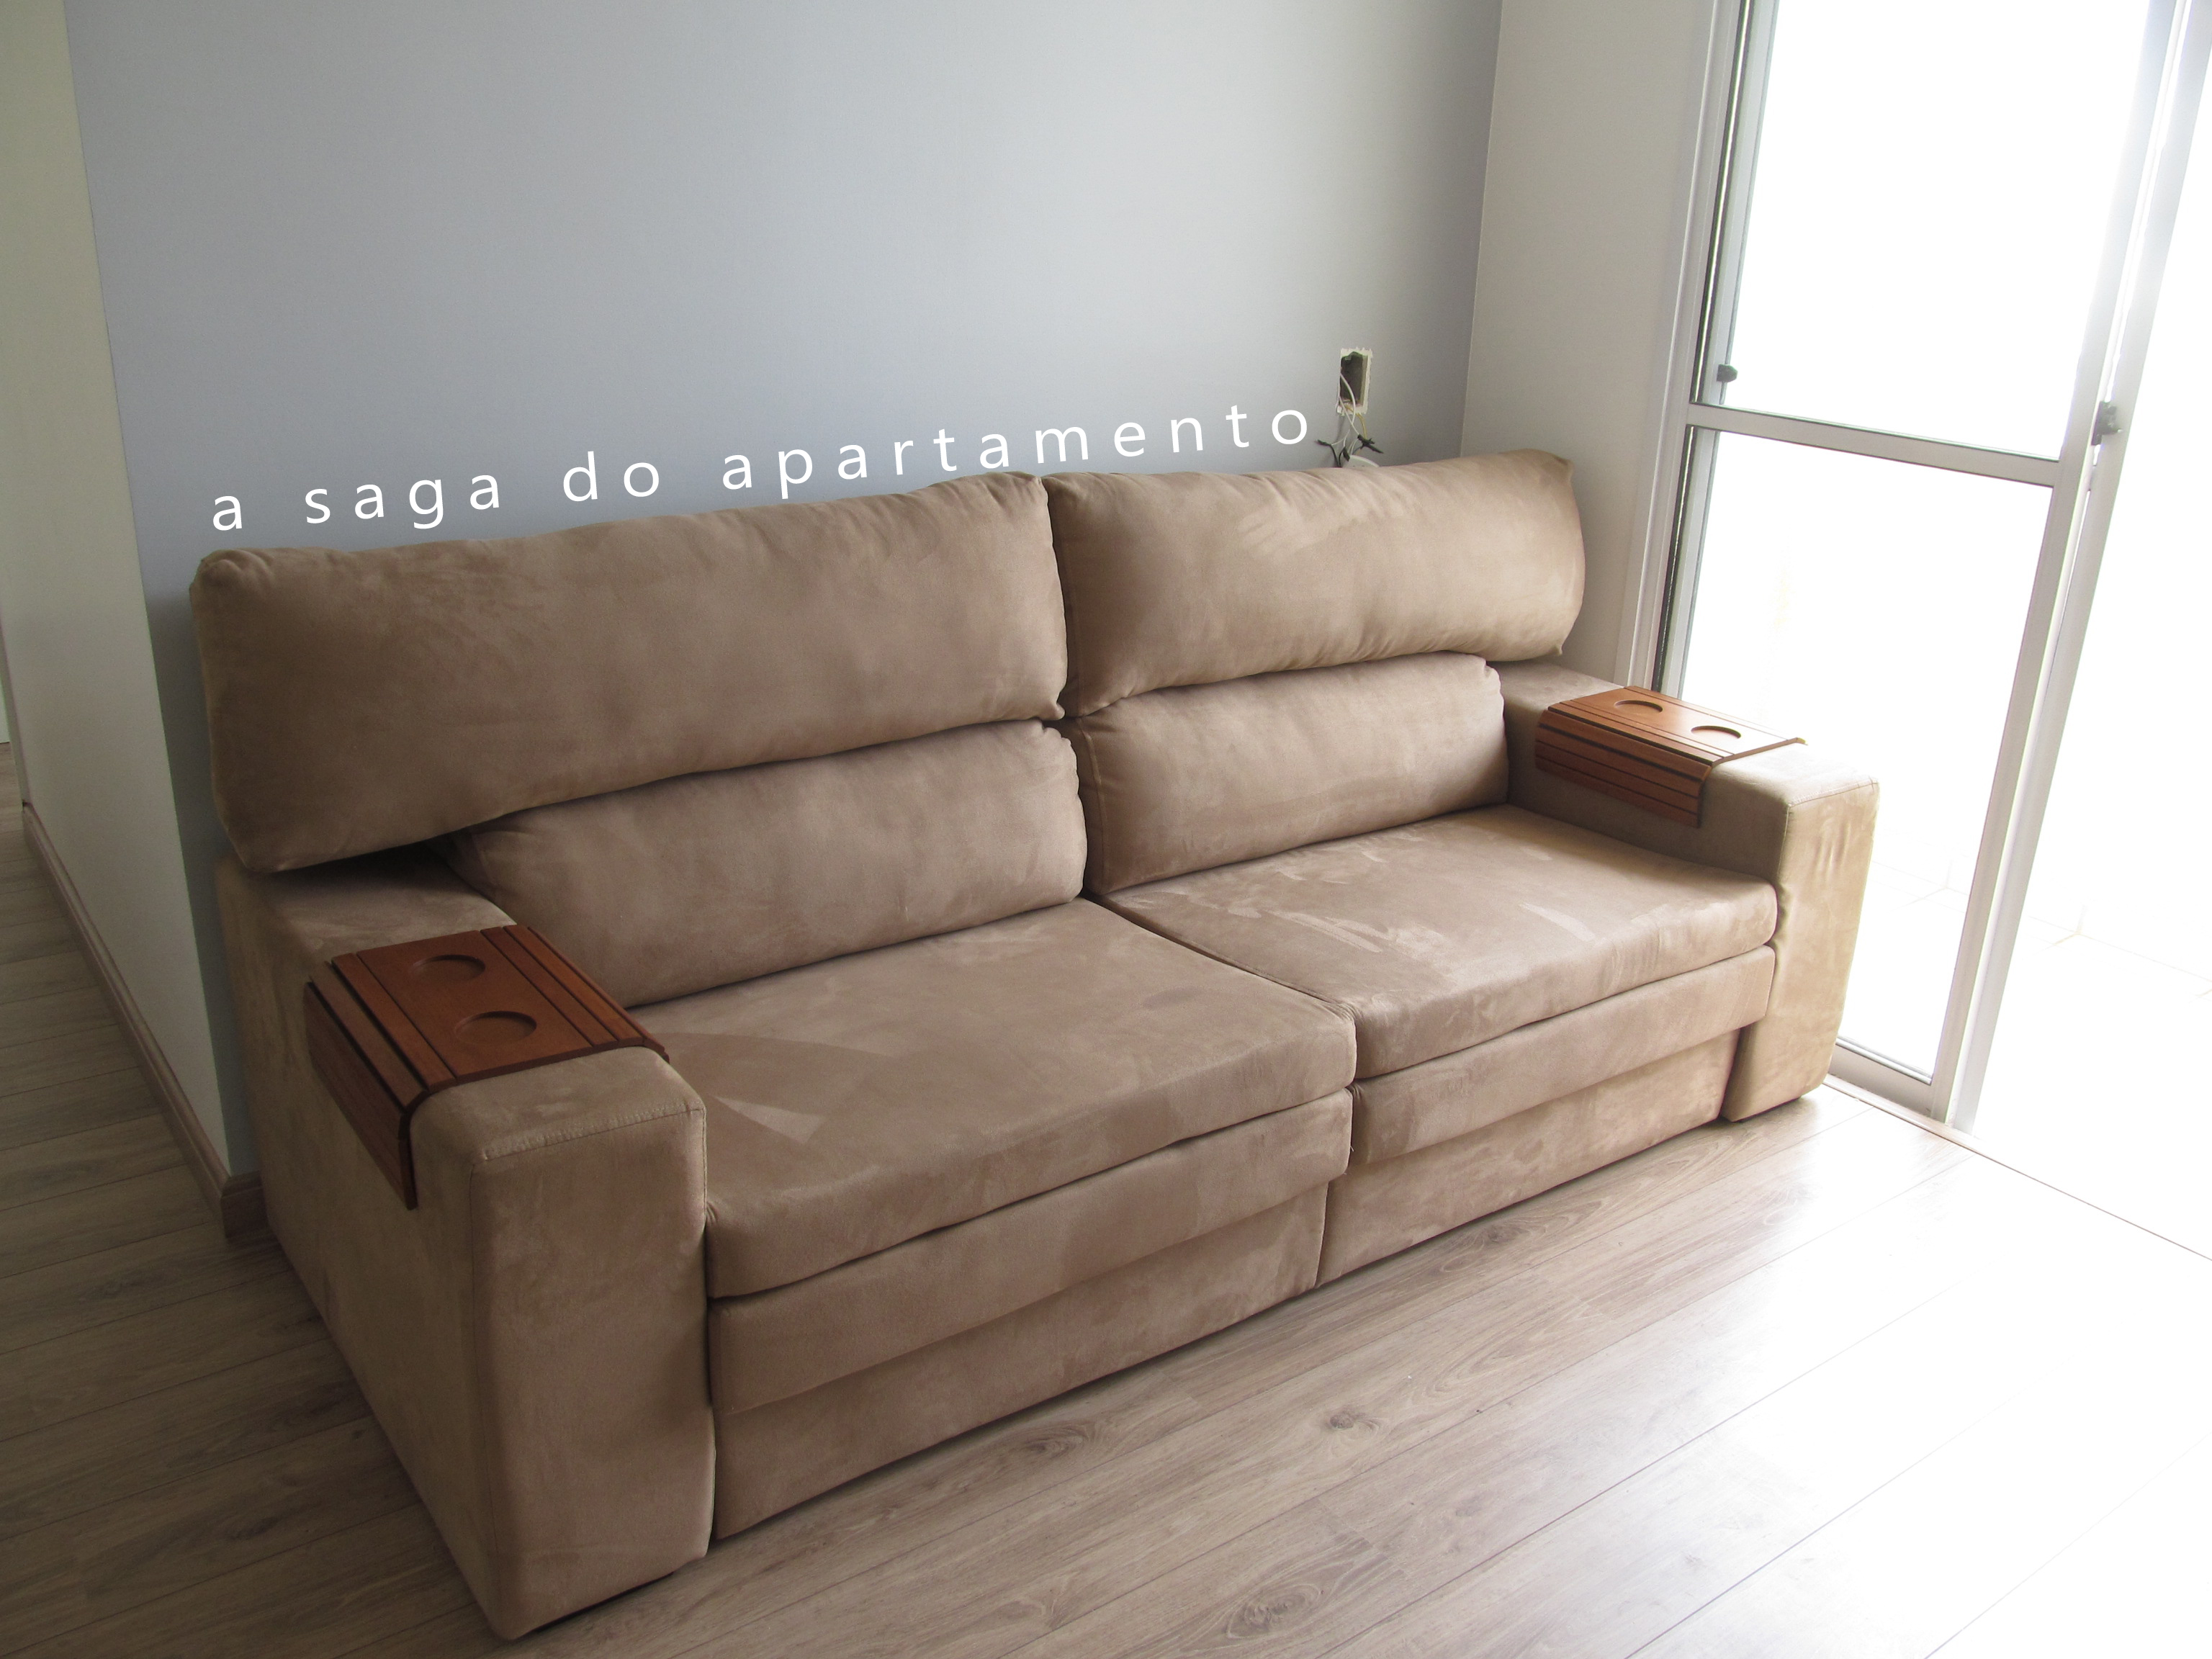 Sofa Retratil Sala Pequena Sofá Retrátil Com Chaise A Saga Do Apartamento